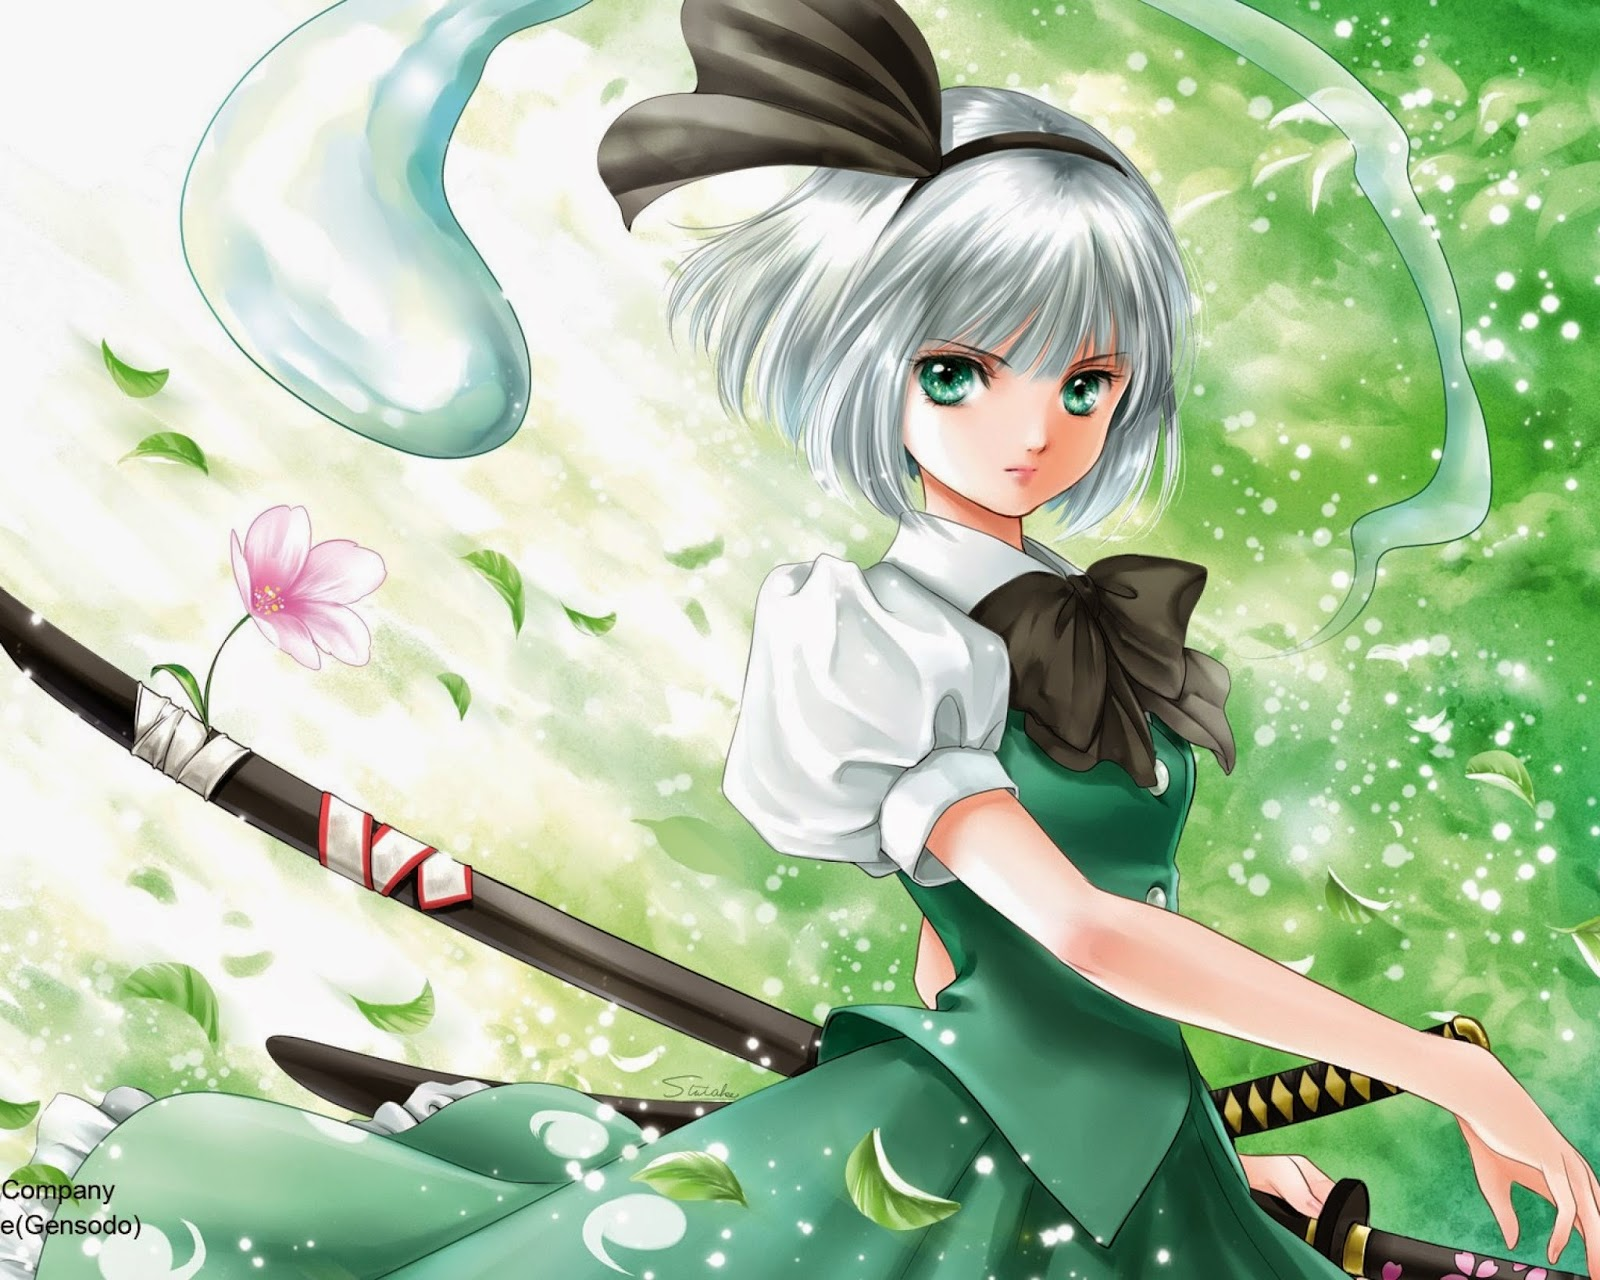 anime girl with silver hair and gold eyes cartoon snapshot